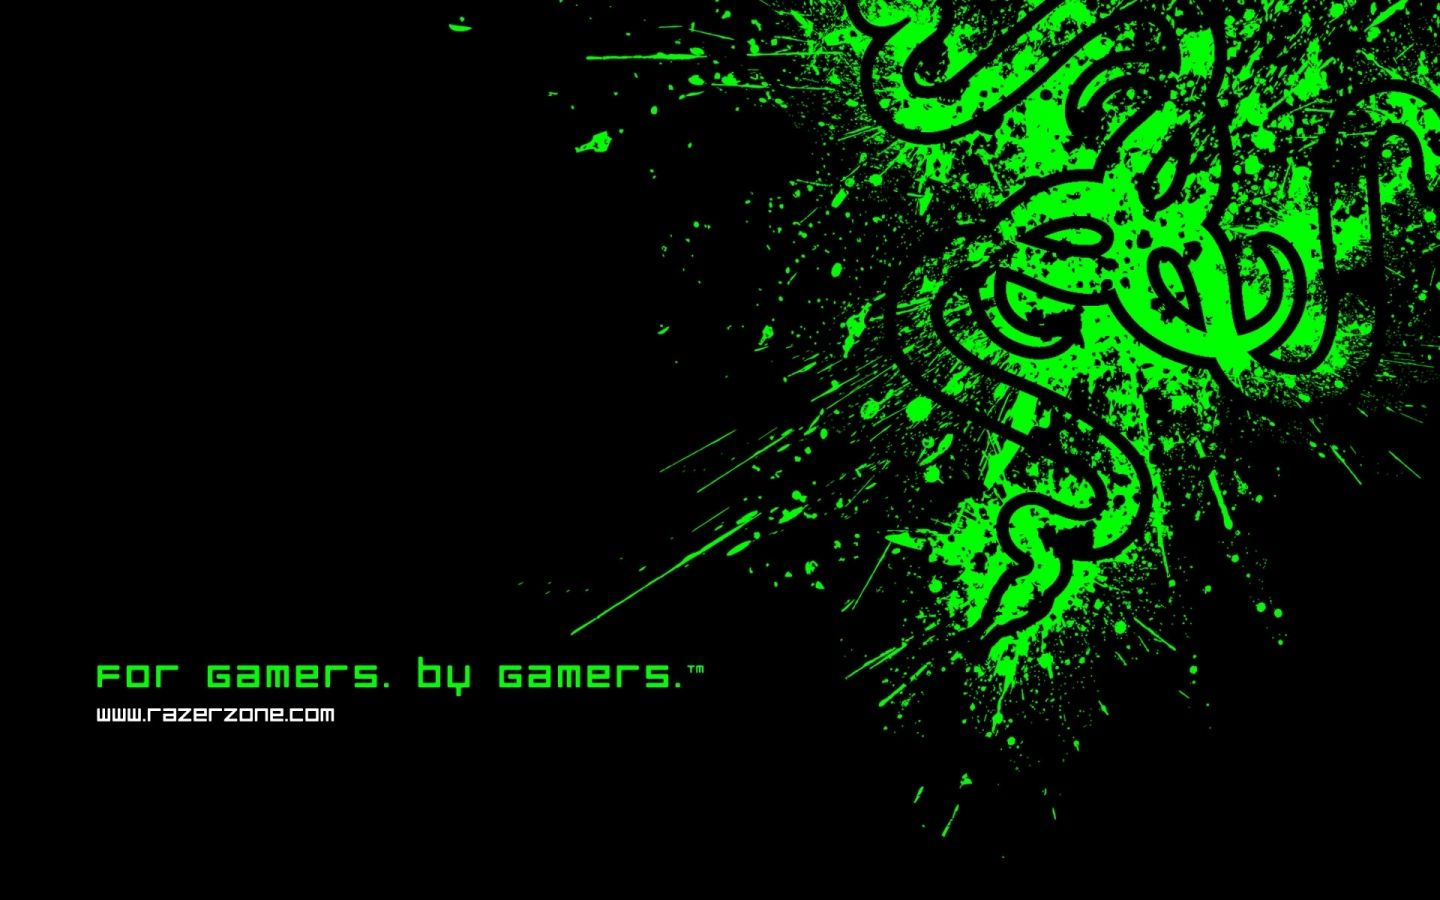 1440x900 razer wallpapers hd, desktop backgrounds 1440x900, images